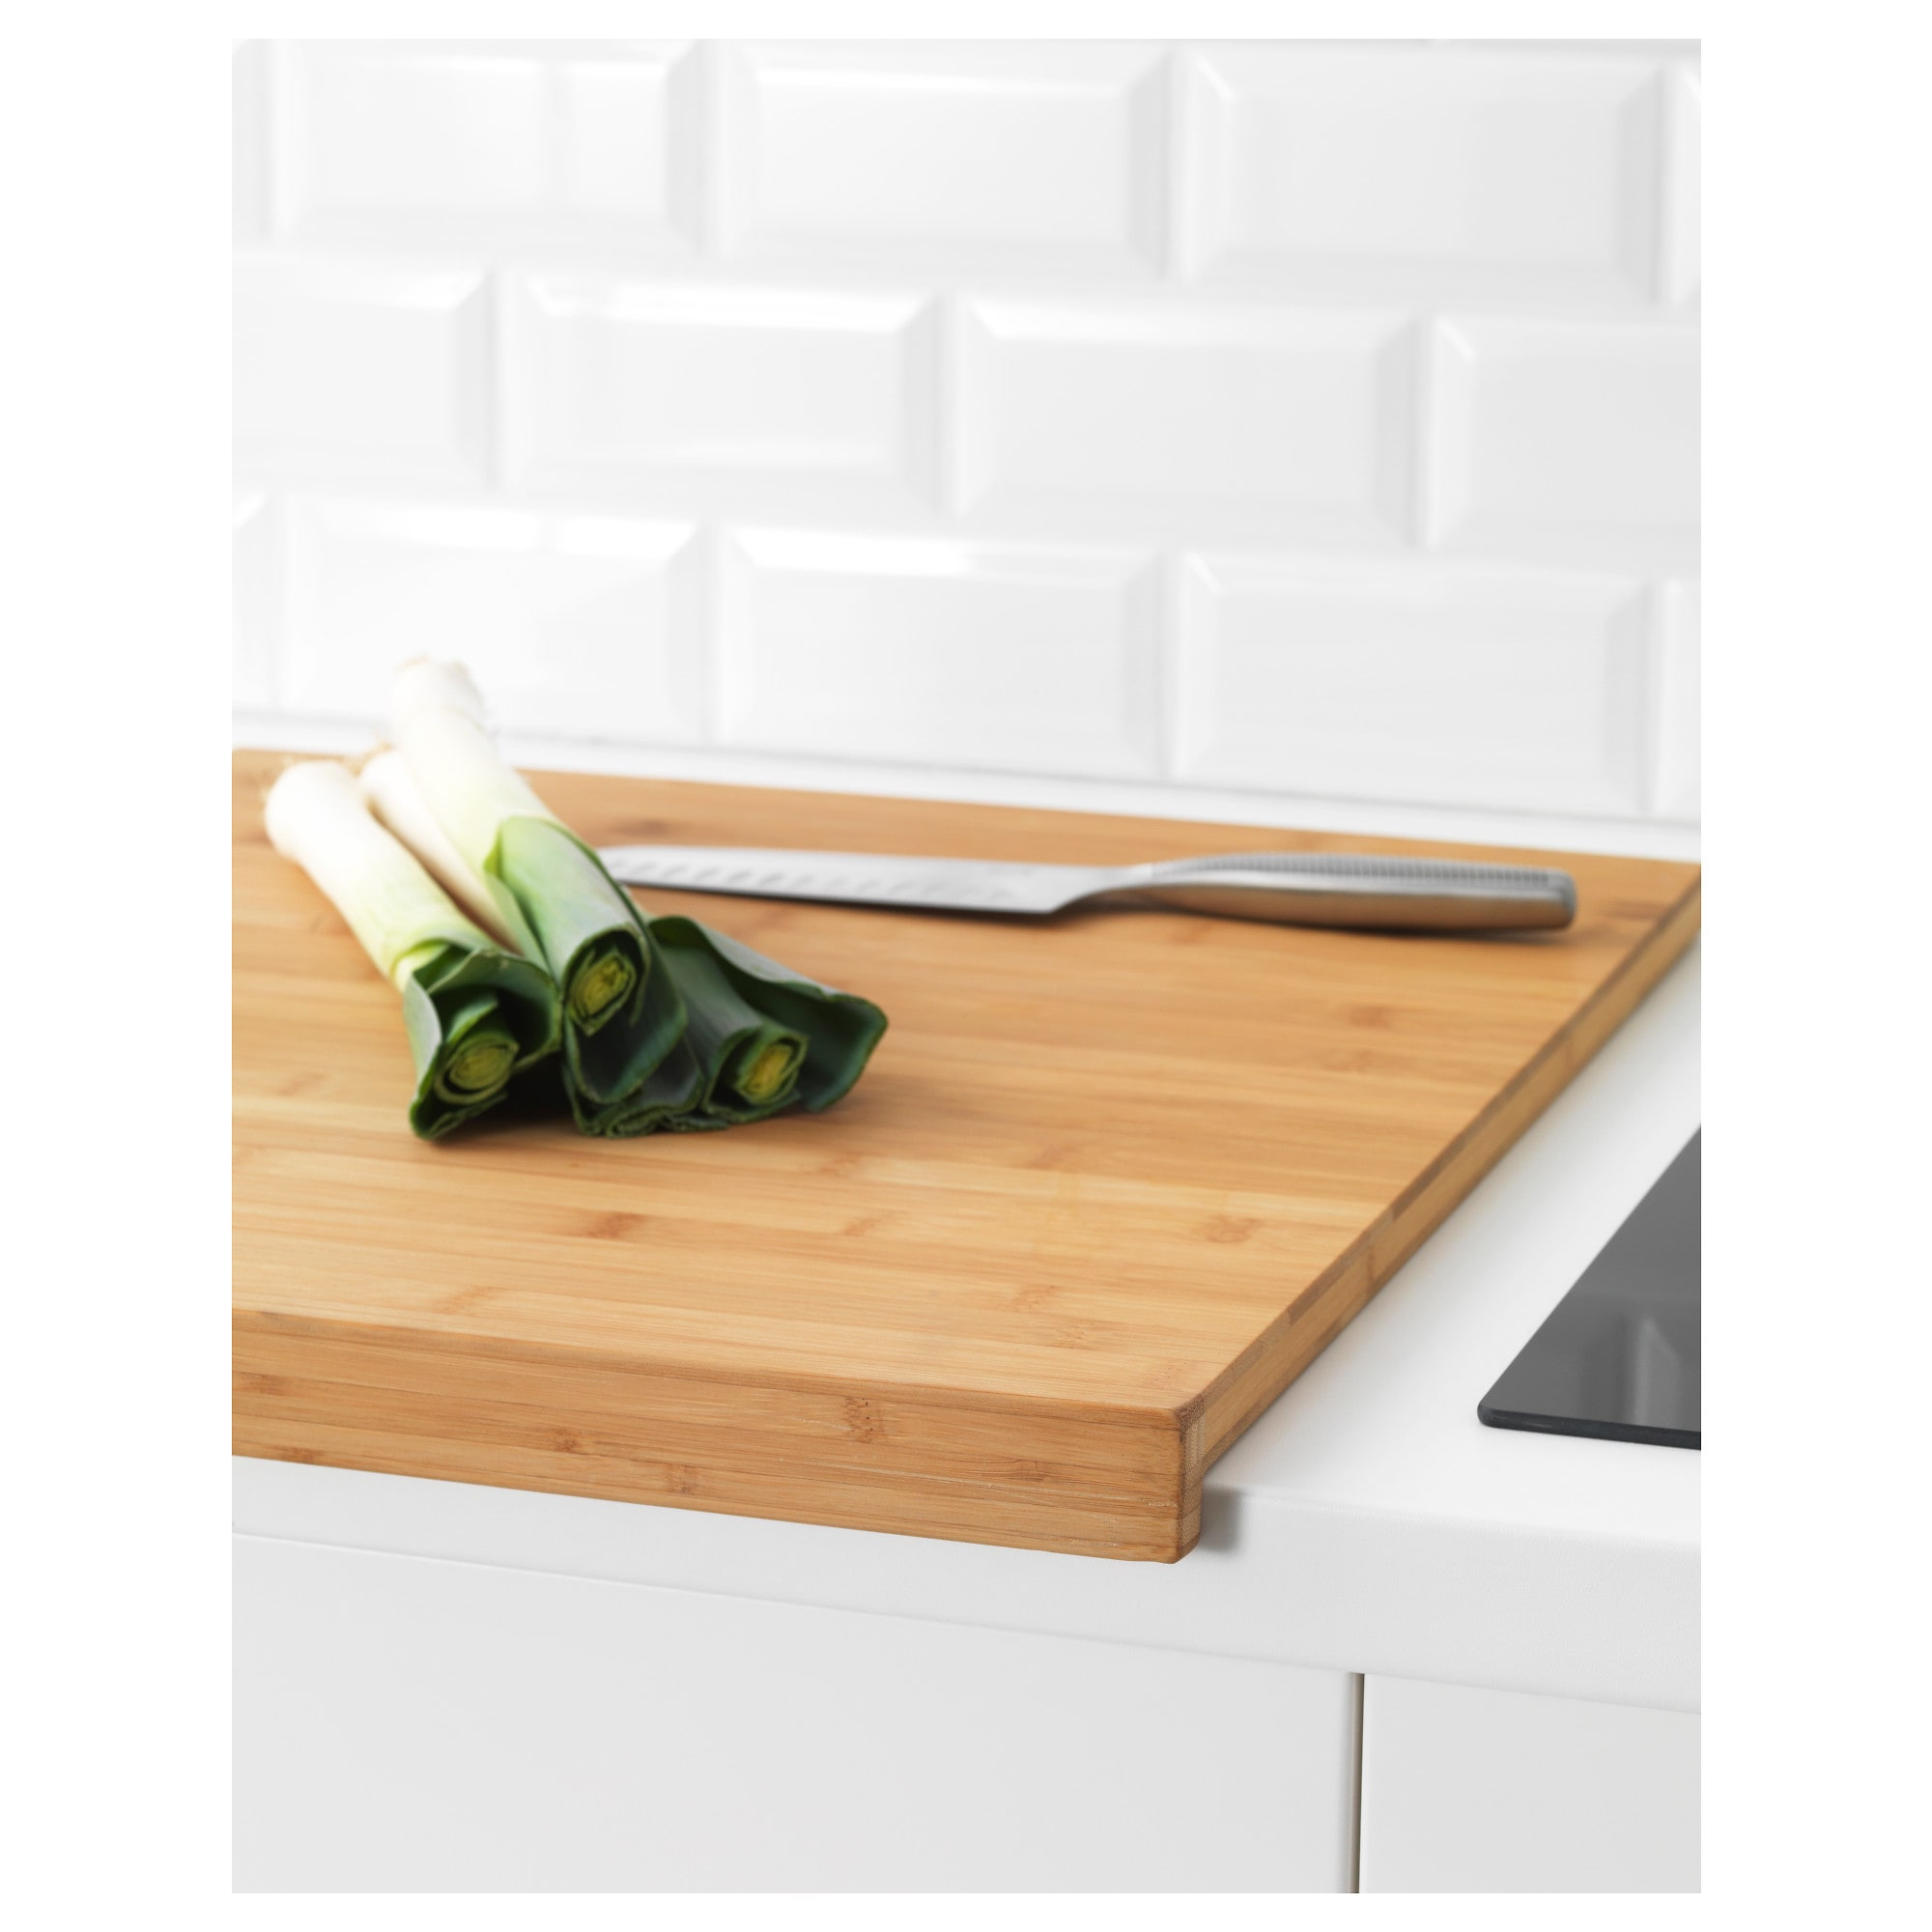 Ikea Wood Countertop Review Lmplig Chopping Board Ikea